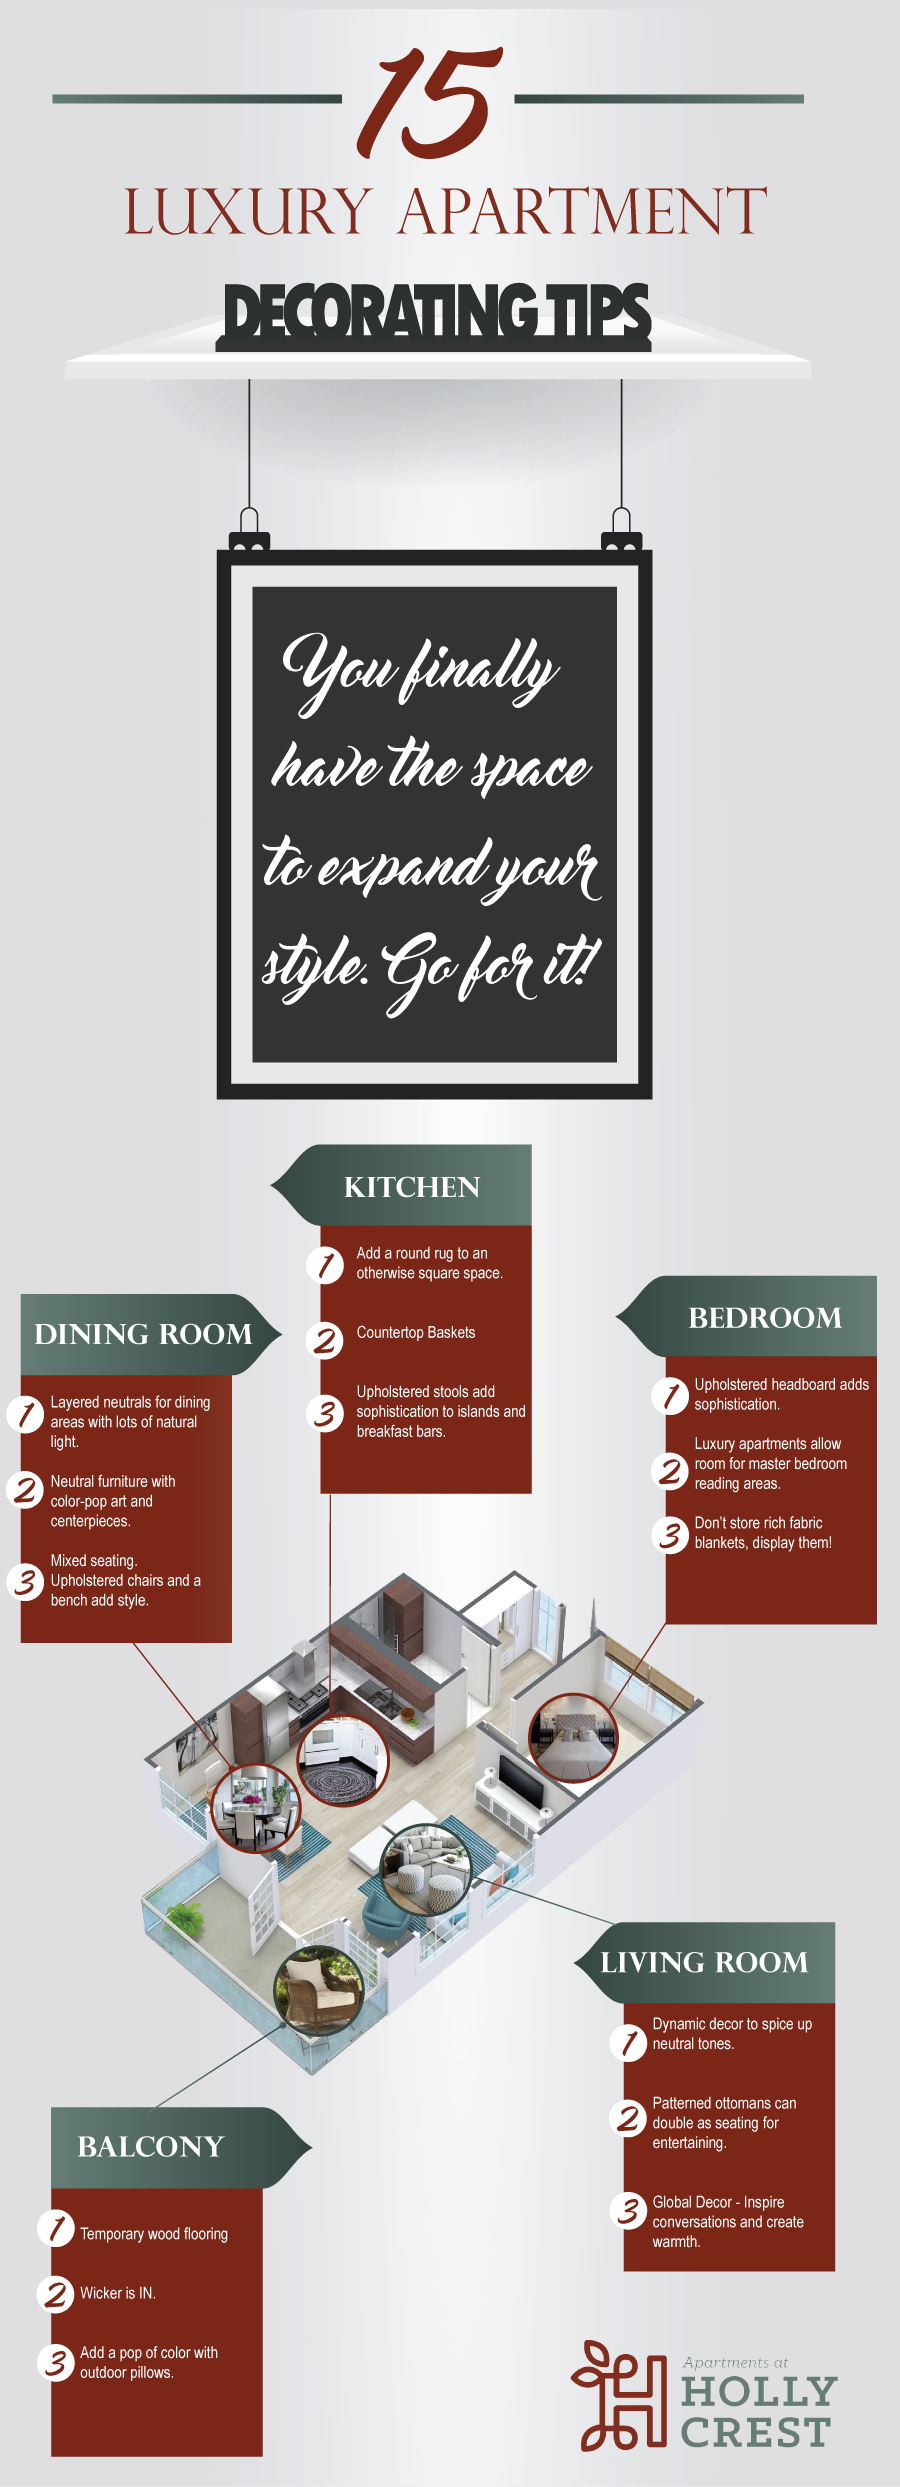 Live the Luxurious Life: 15 Decorating Tips for Luxury Apartments - Infographic